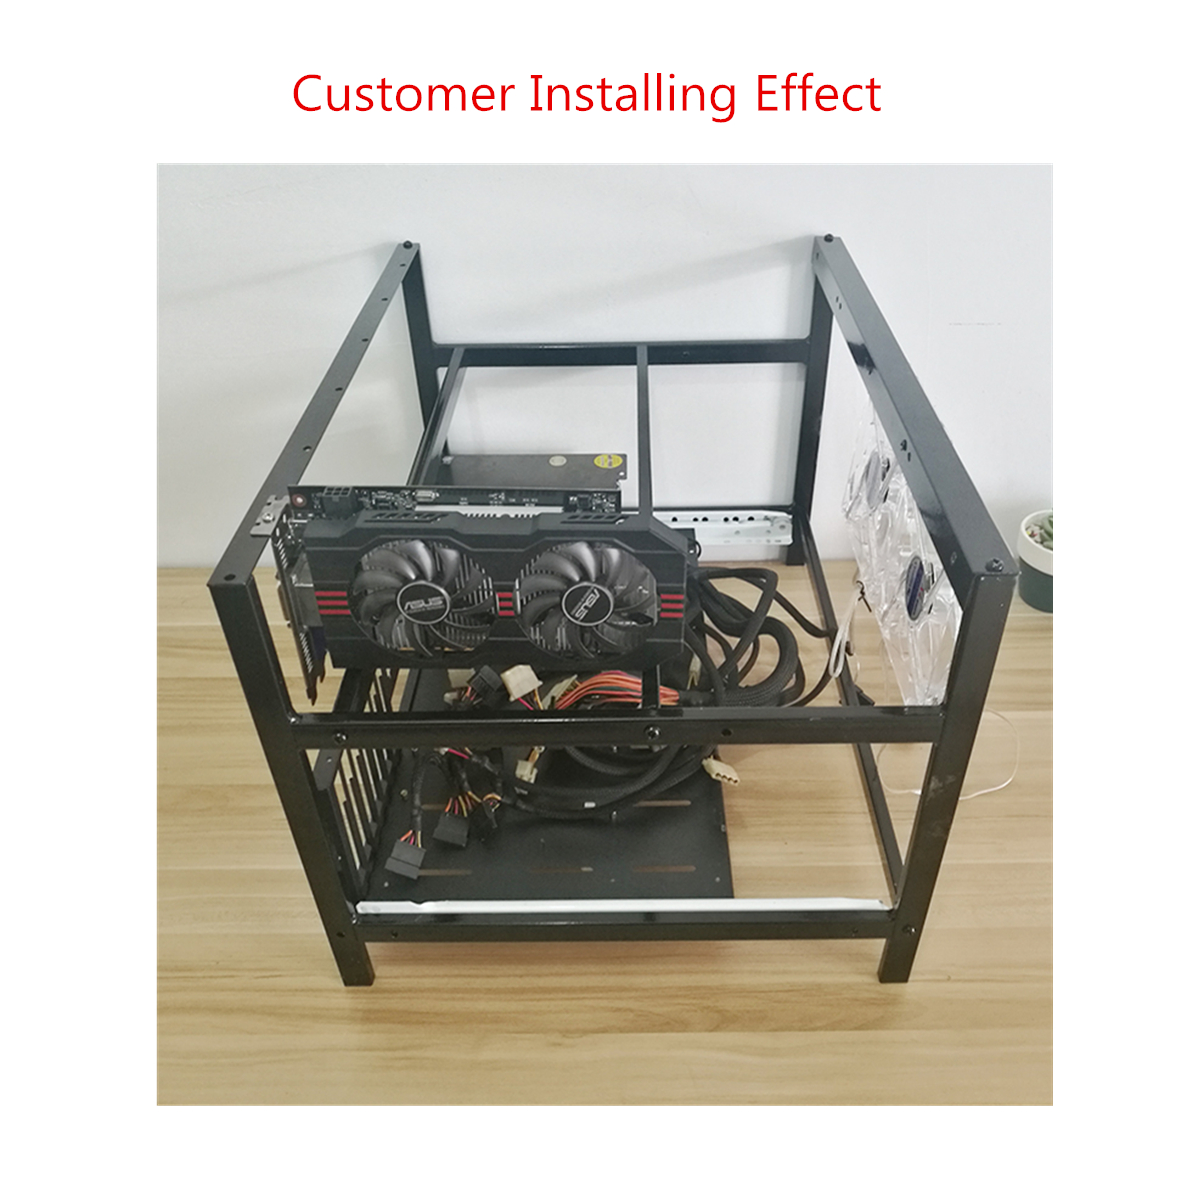 Big Coin Open Air Mining Miner Steal Frame Rig Case up to 6 GPU ETH BTC Ethereum